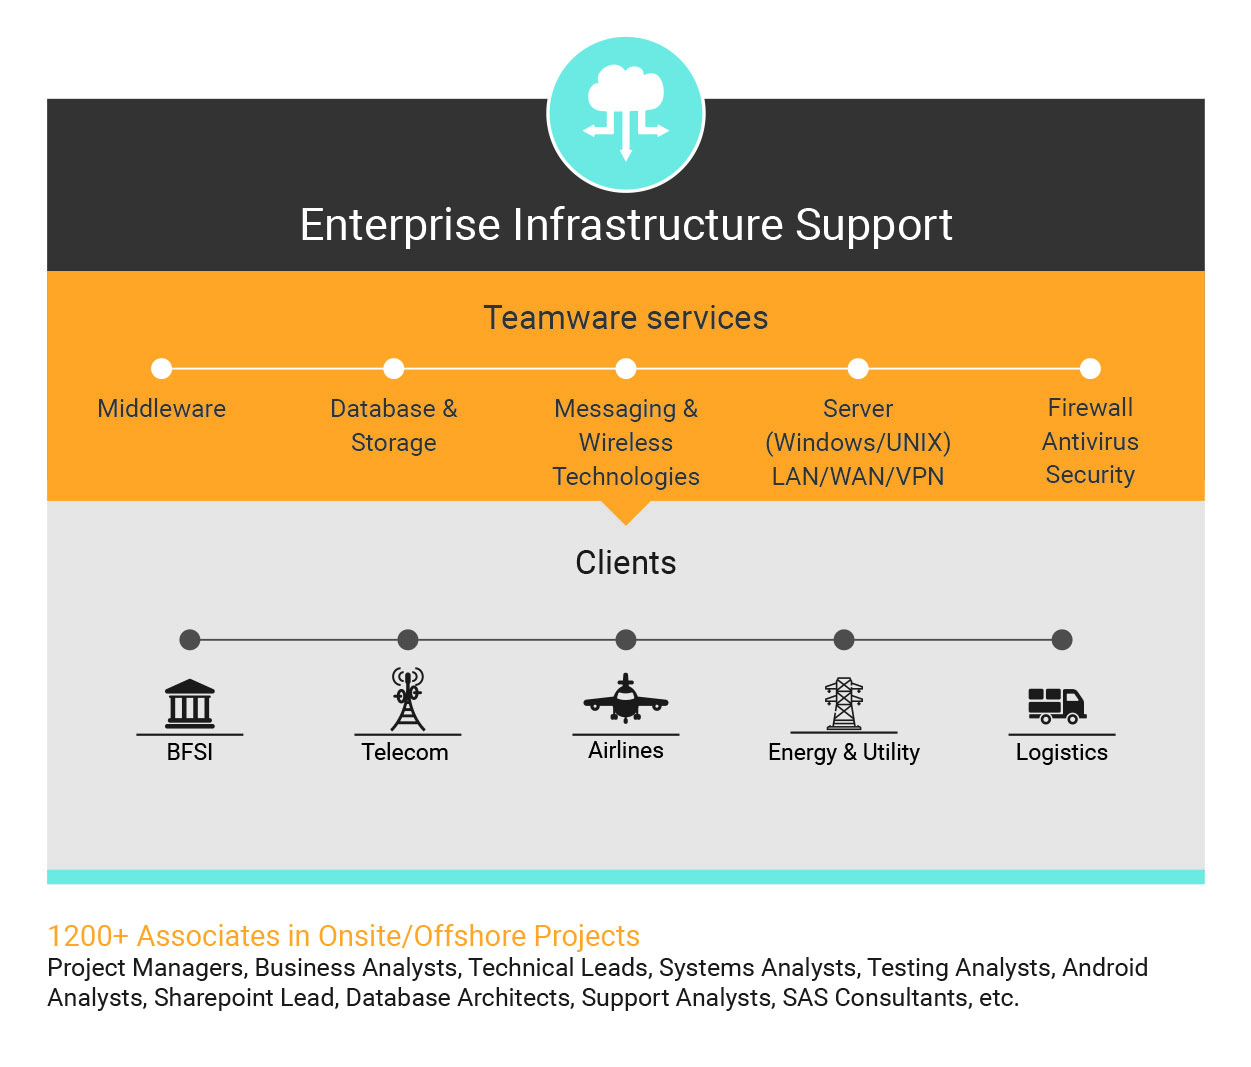 Enterprise Infrastructure Support